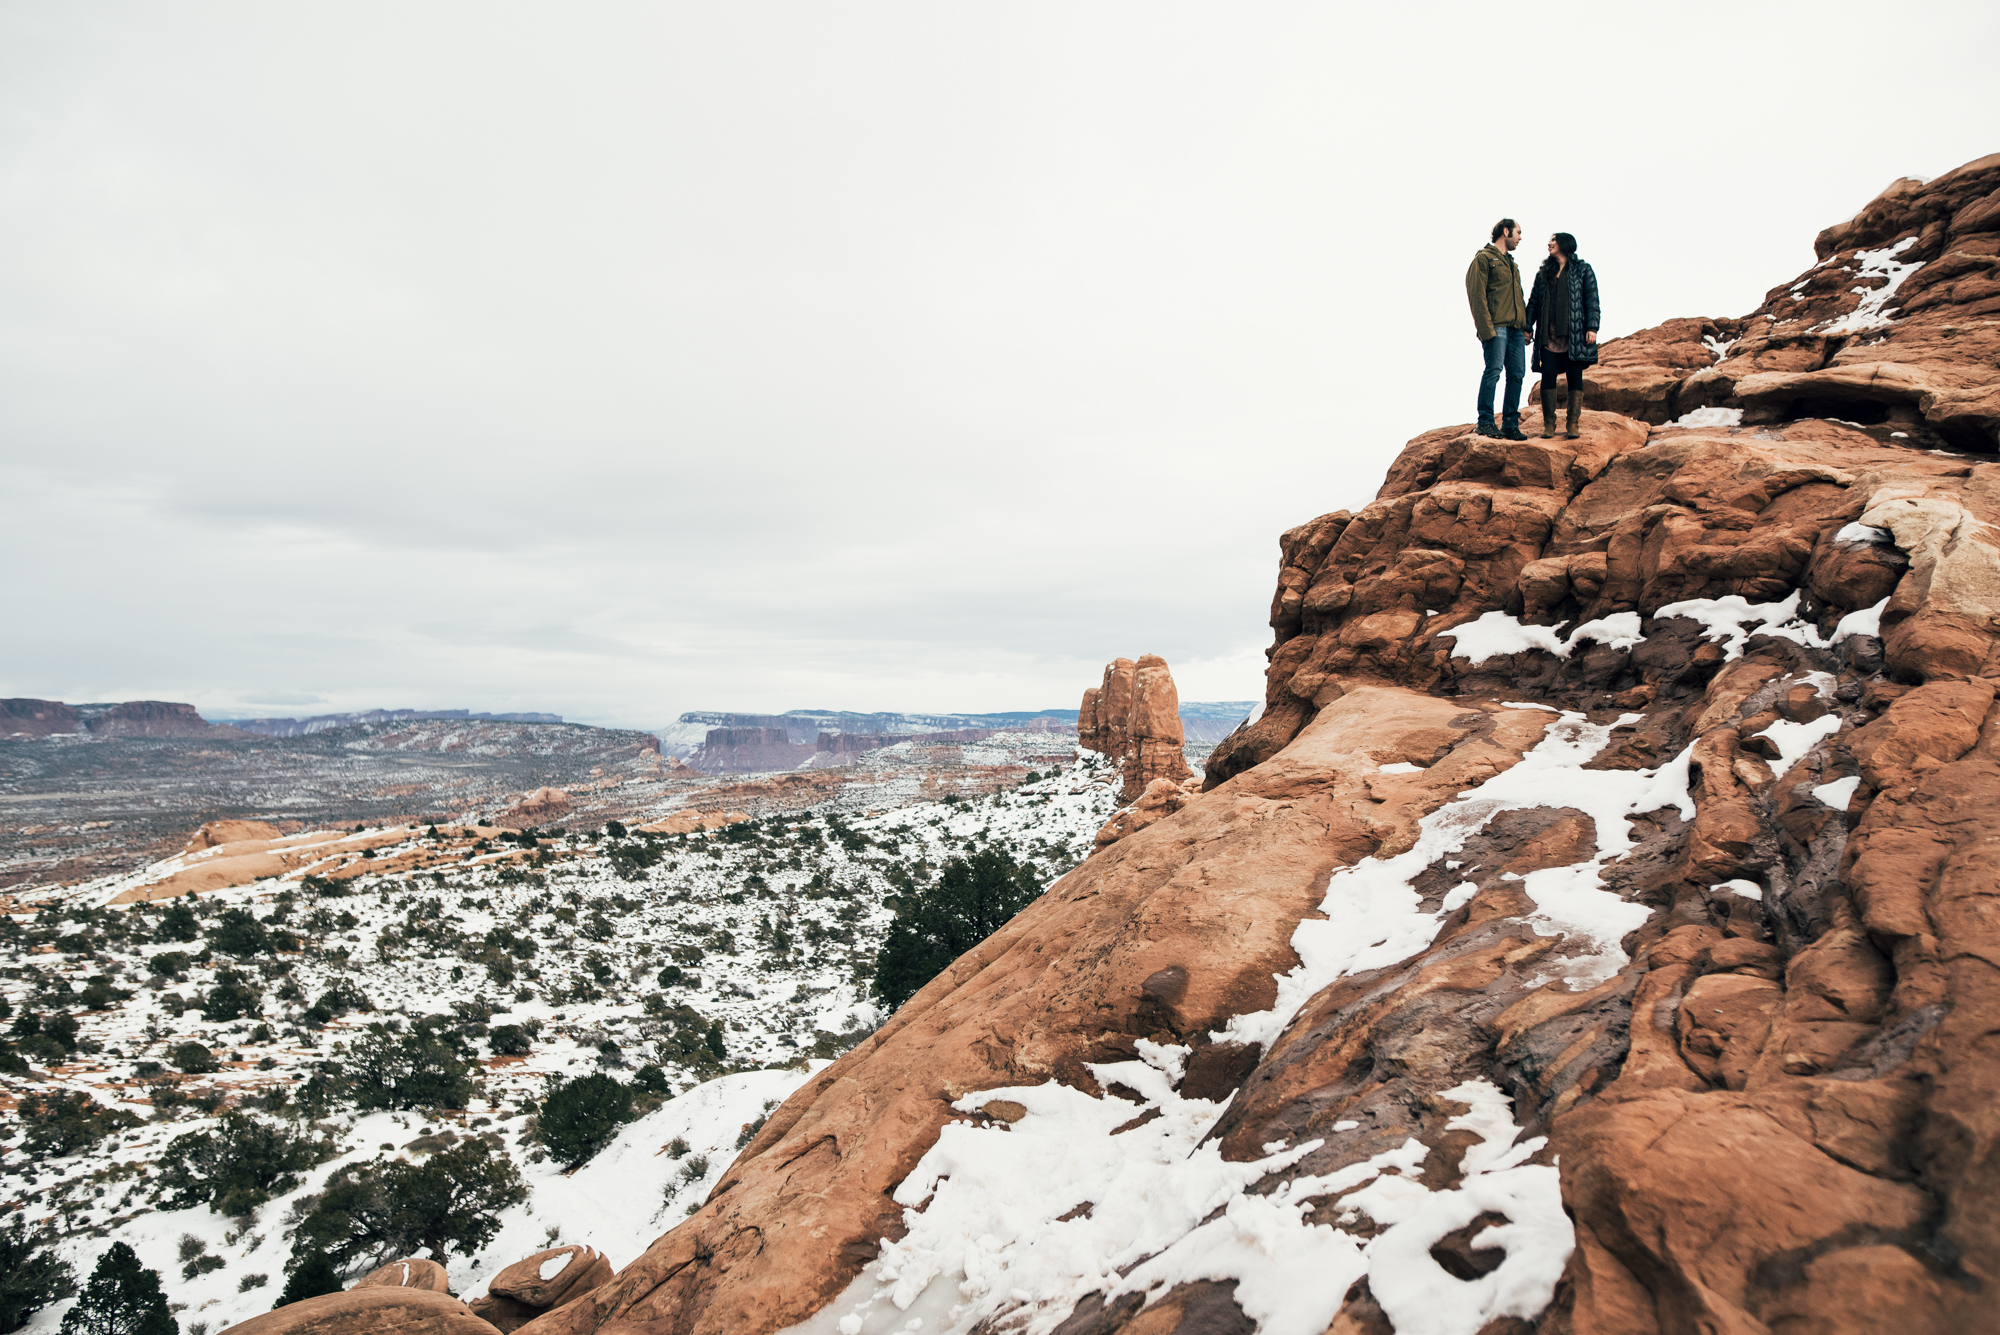 ©Isaiah & Taylor Photography - Arches National Park Adventure Engagement, Moab Utah-031.jpg